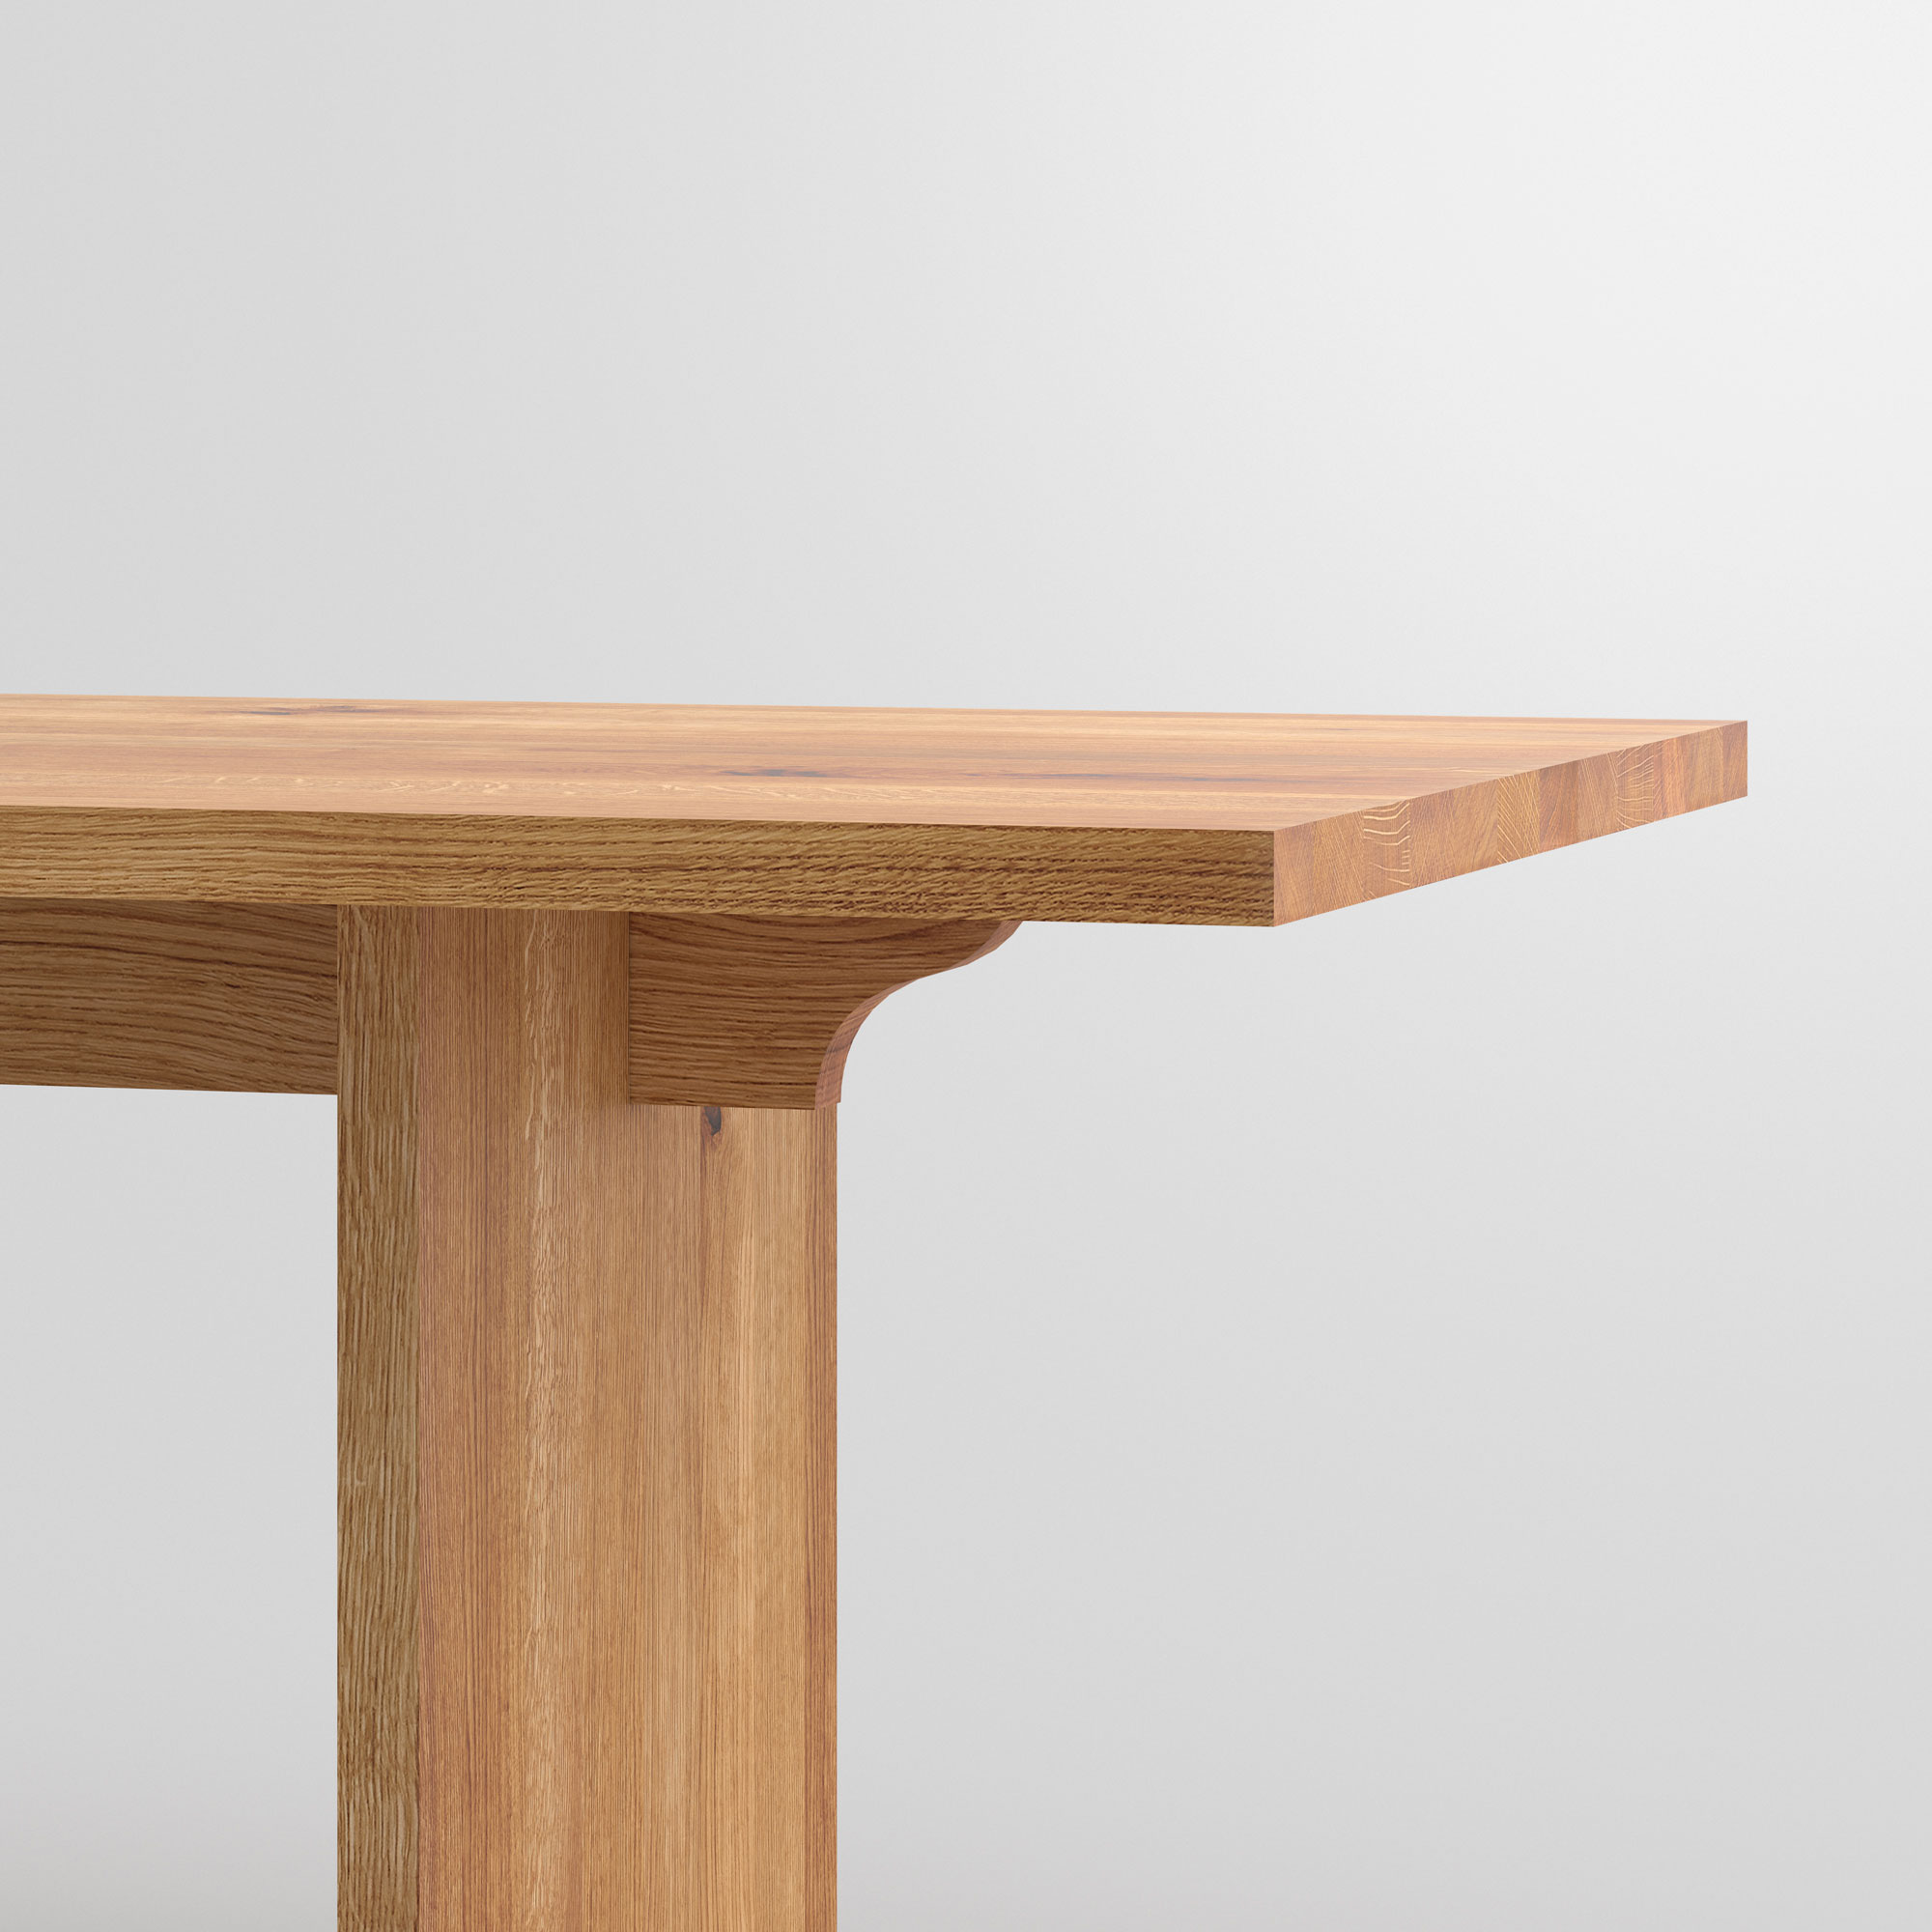 Gable Solid Wood Table SAGA cam2 custom made in solid wood by vitamin design